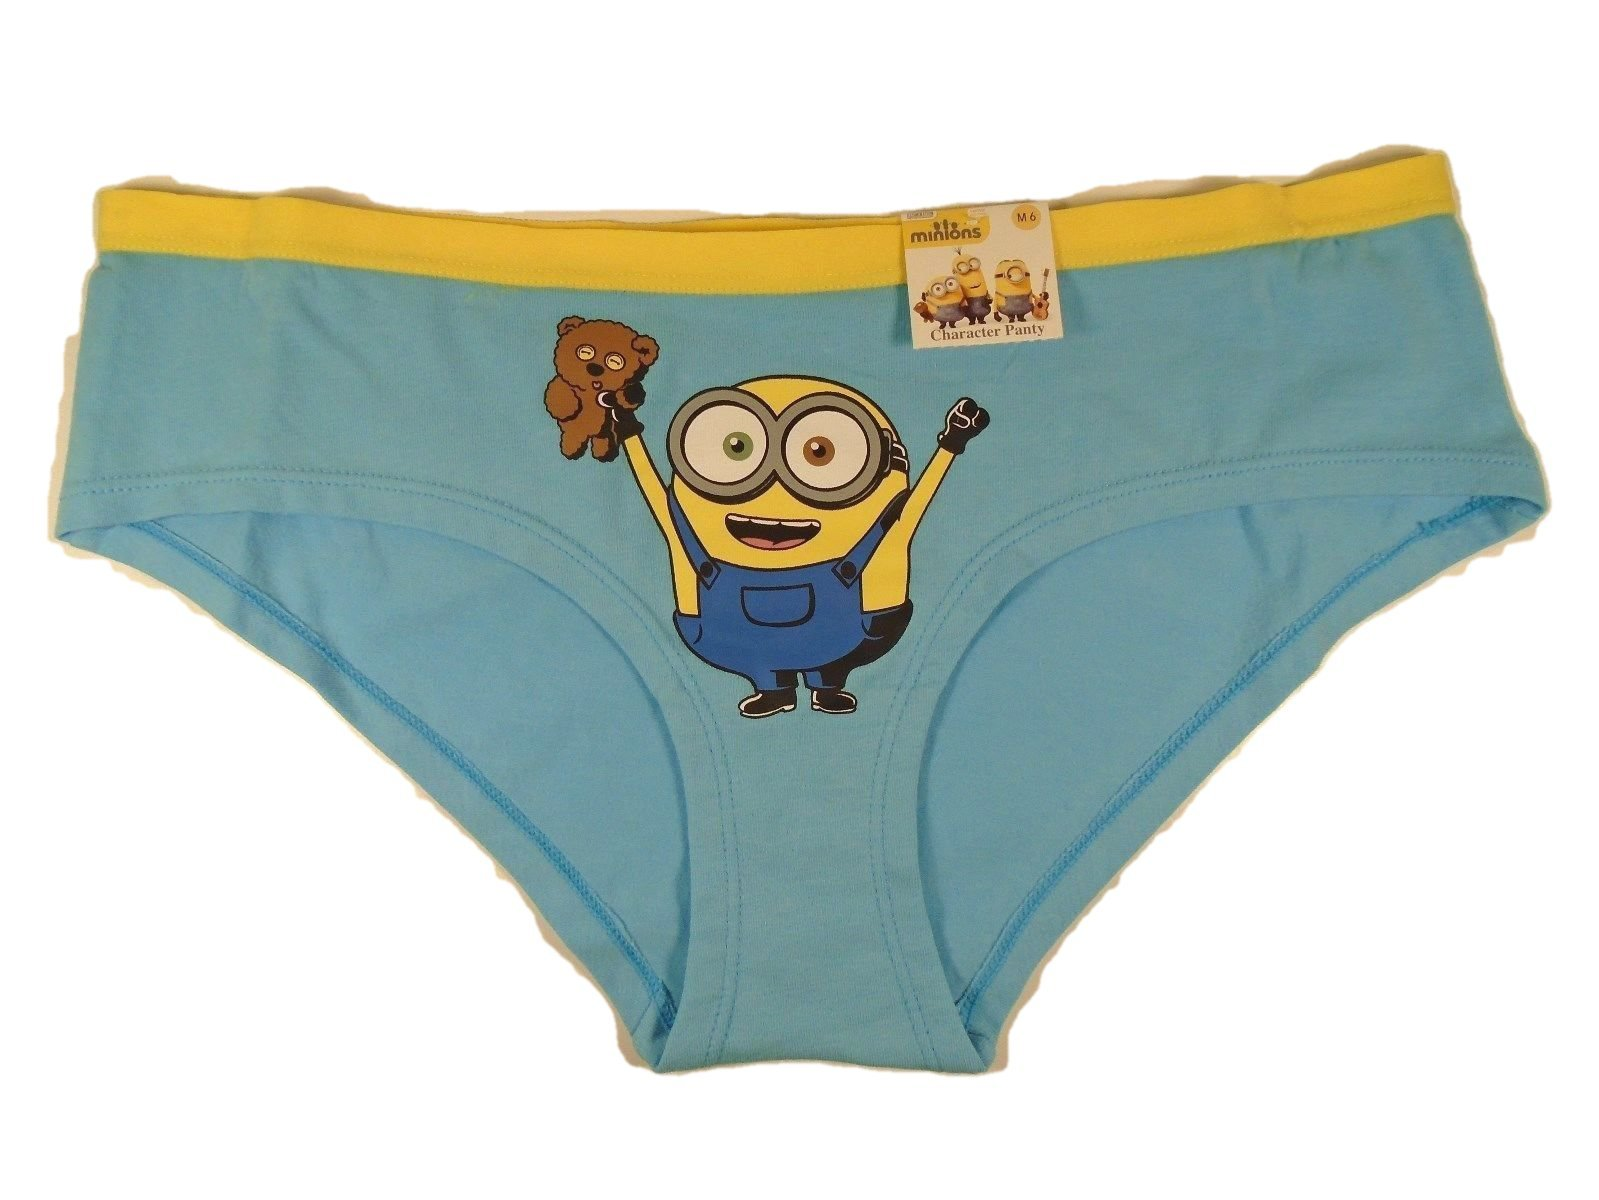 Minion in panties Despicable Me Minions Ladies Women S Character Panties Underwear Buy Online In India At Desertcart 76305760